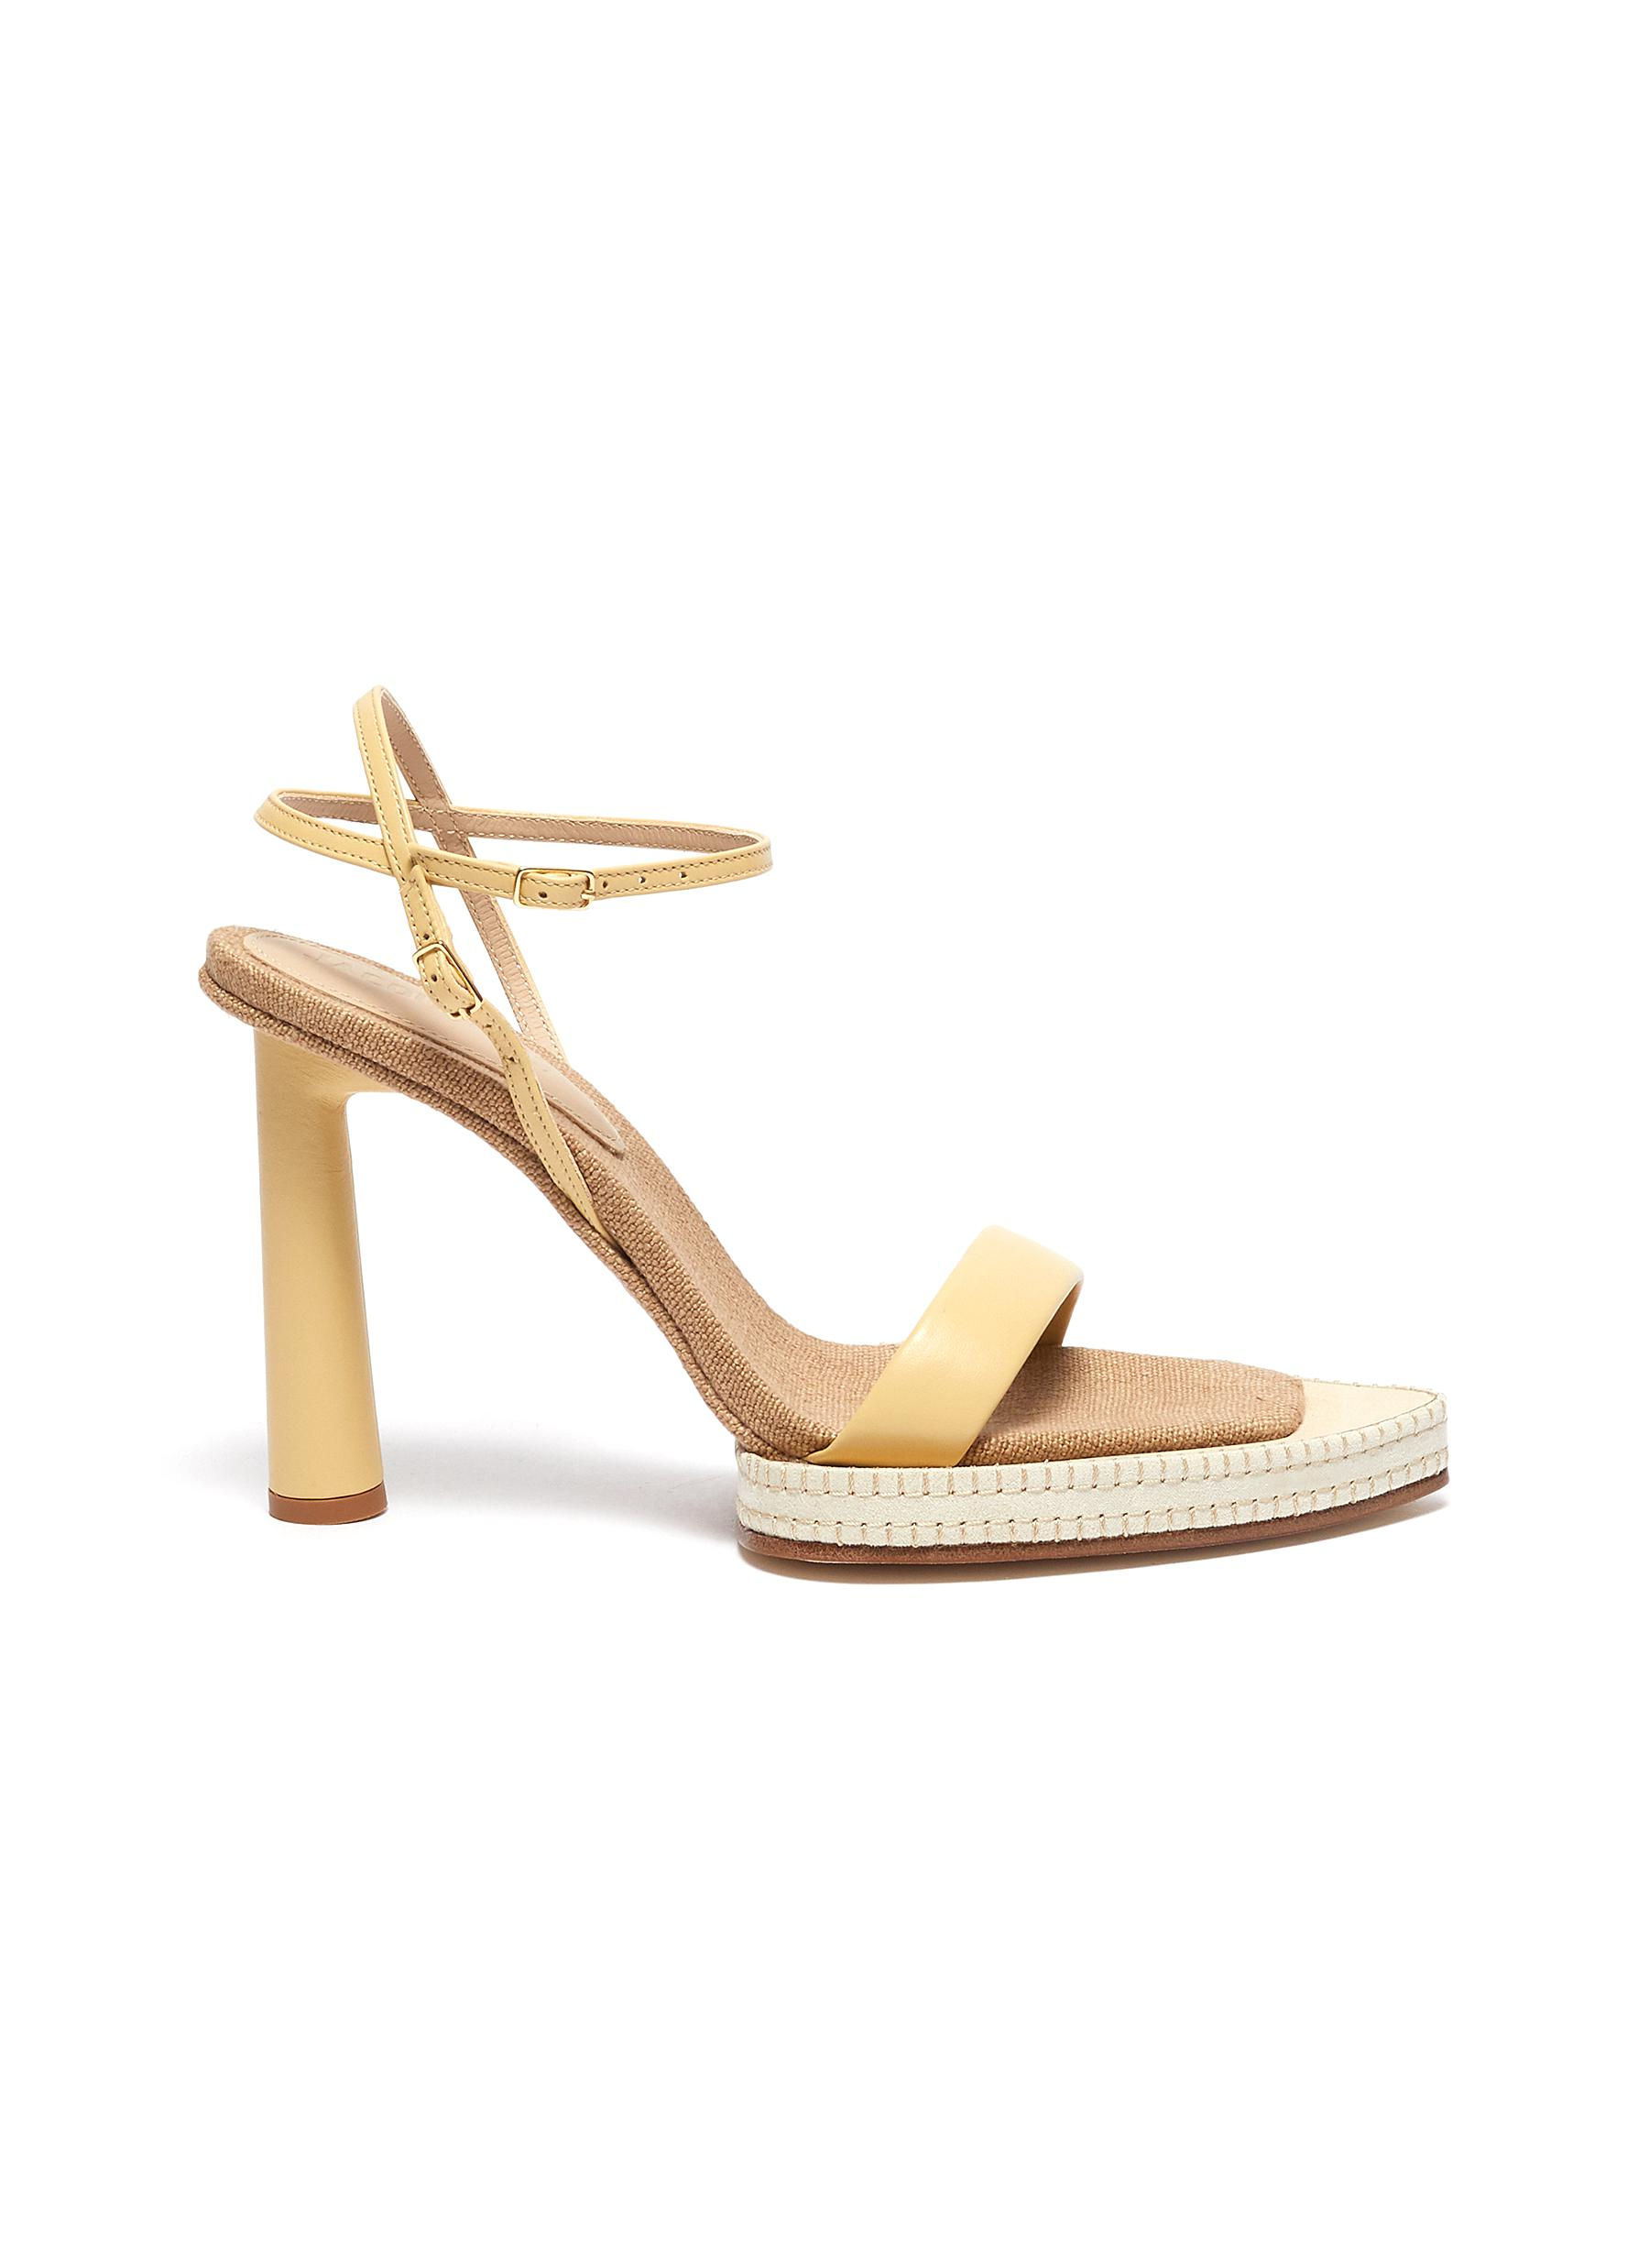 Jacquemus 'LES SANDALES NOVIO' EXAGGERATED SOLE LEATHER SANDALS